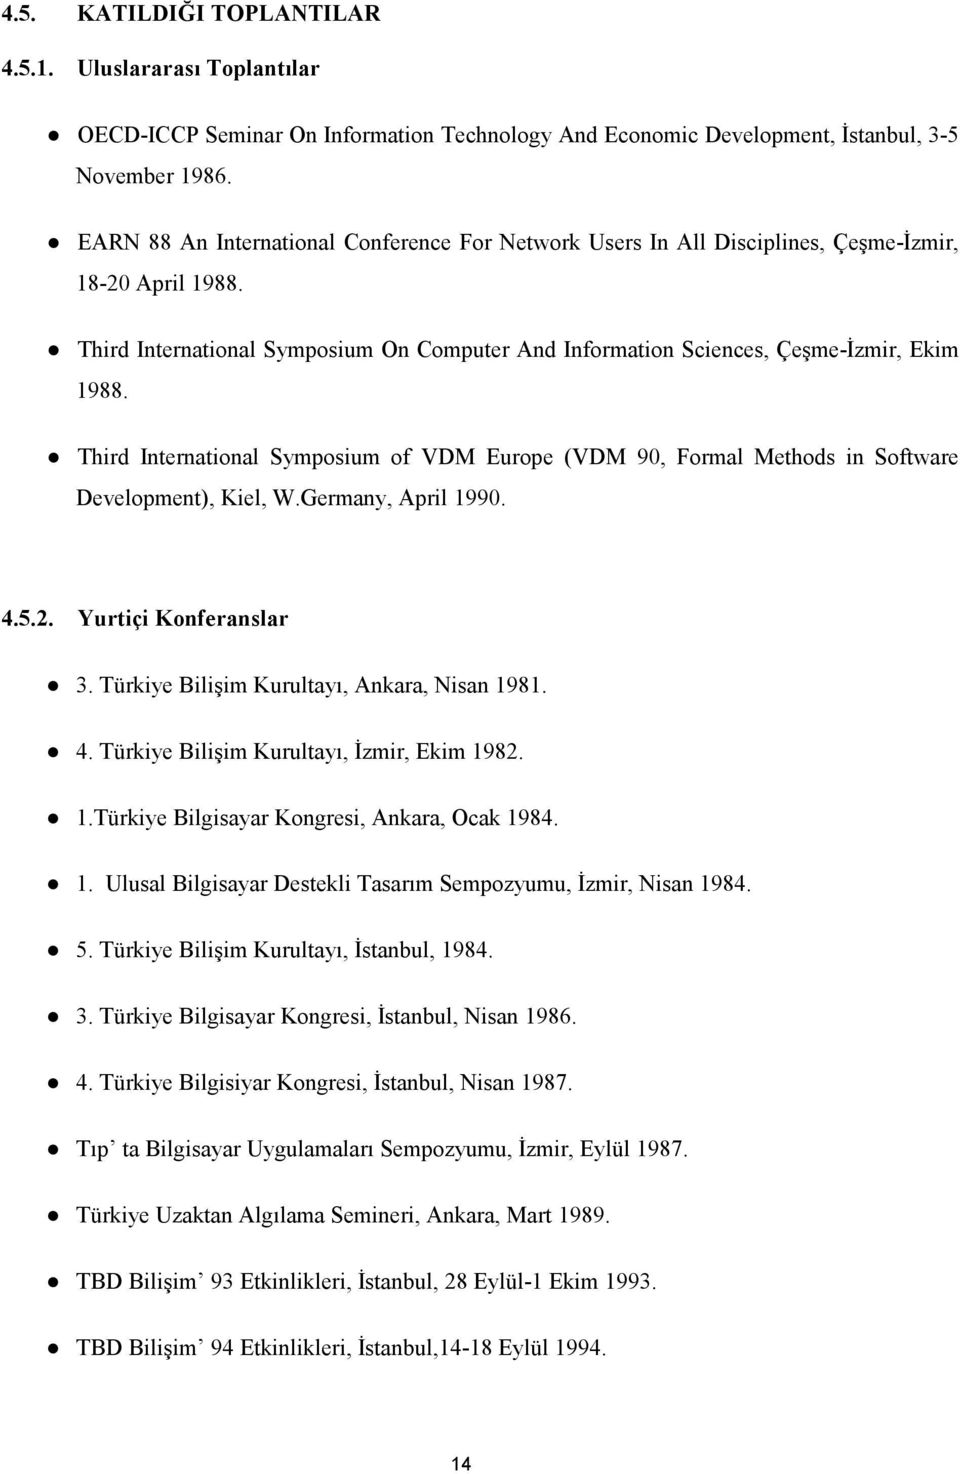 Third International Symposium of VDM Europe (VDM 90, Formal Methods in Software Development), Kiel, W.Germany, April 1990. 4.5.2. Yurtiçi Konferanslar 3. Türkiye Bilişim Kurultayı, Ankara, Nisan 1981.